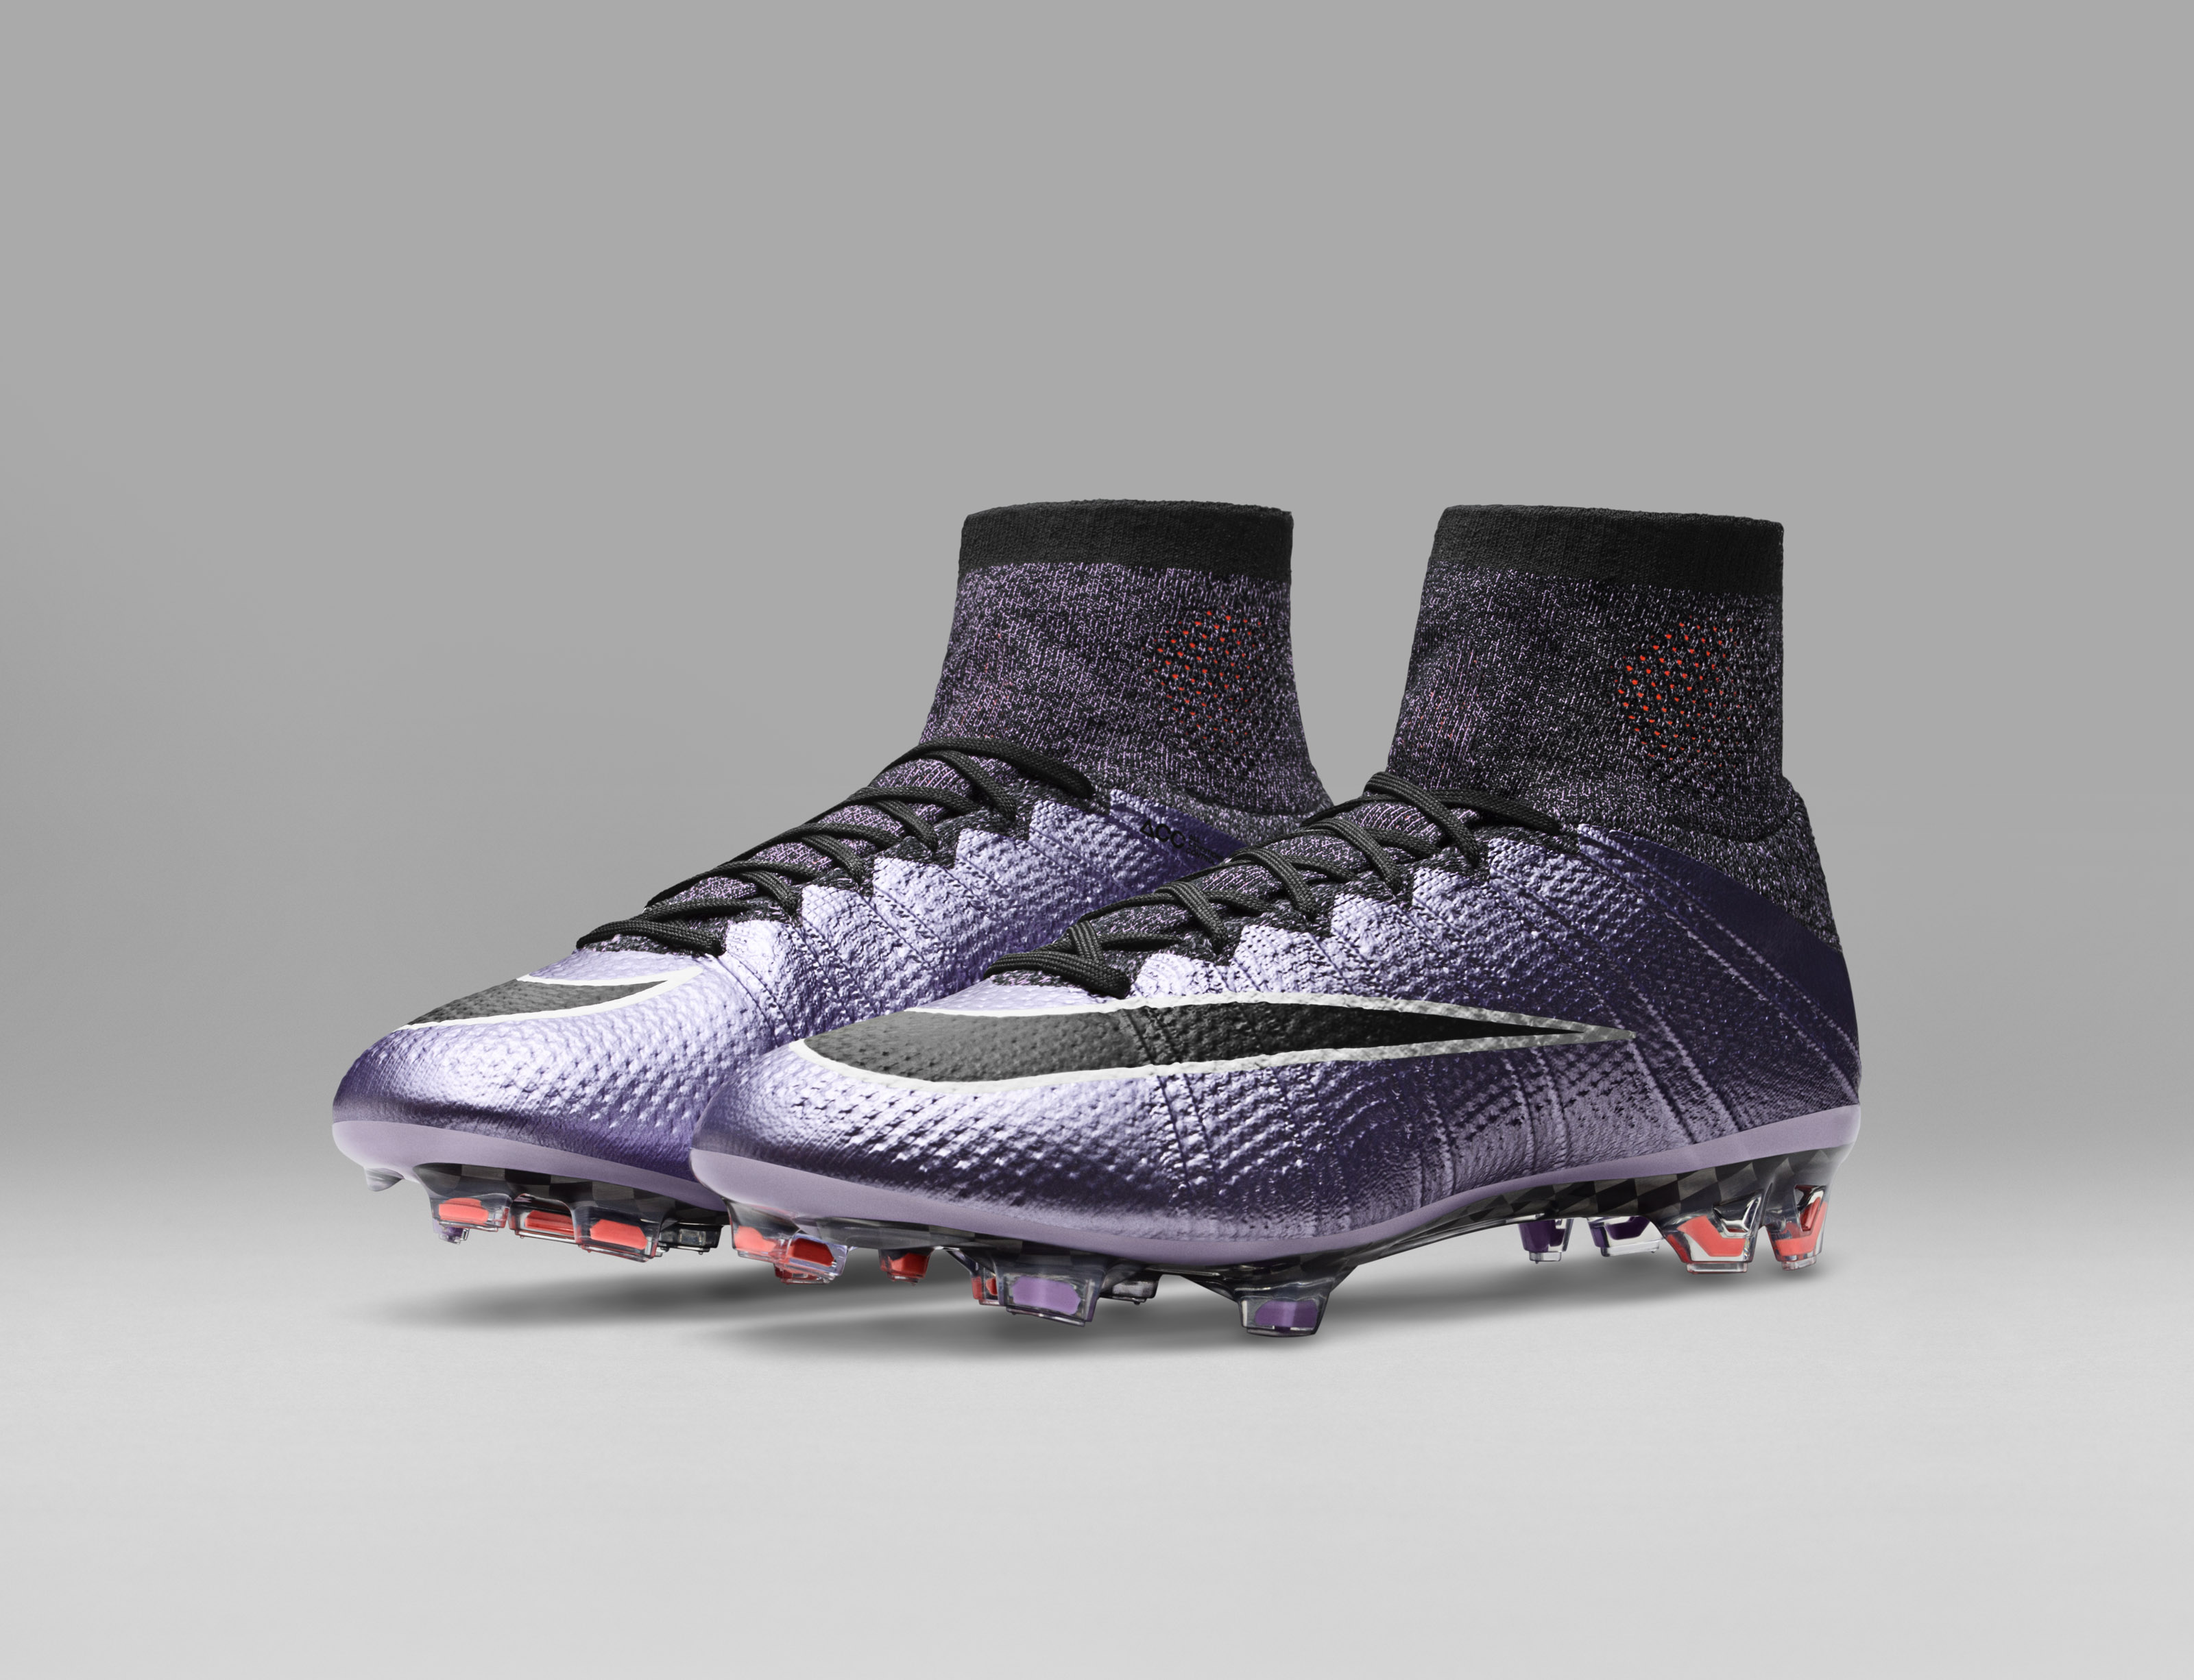 Nike_Football_LIQUID_CHROME_MERCURIAL_SUPERFLY_FG_641858_580_E_original